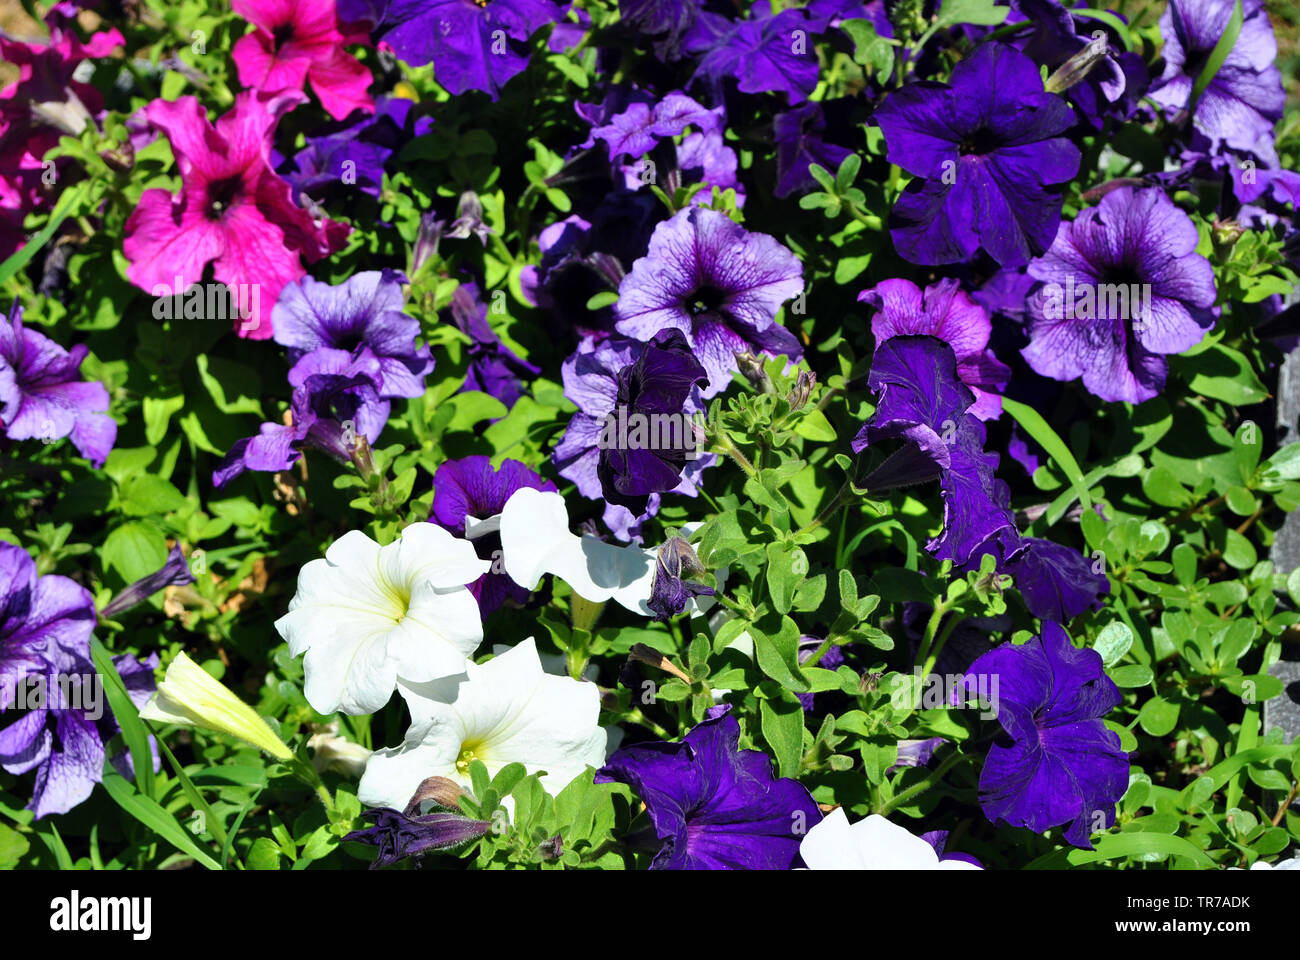 5522f8d0b4 Petunia grandiflora pink, white and dark purple flowers, top view ...